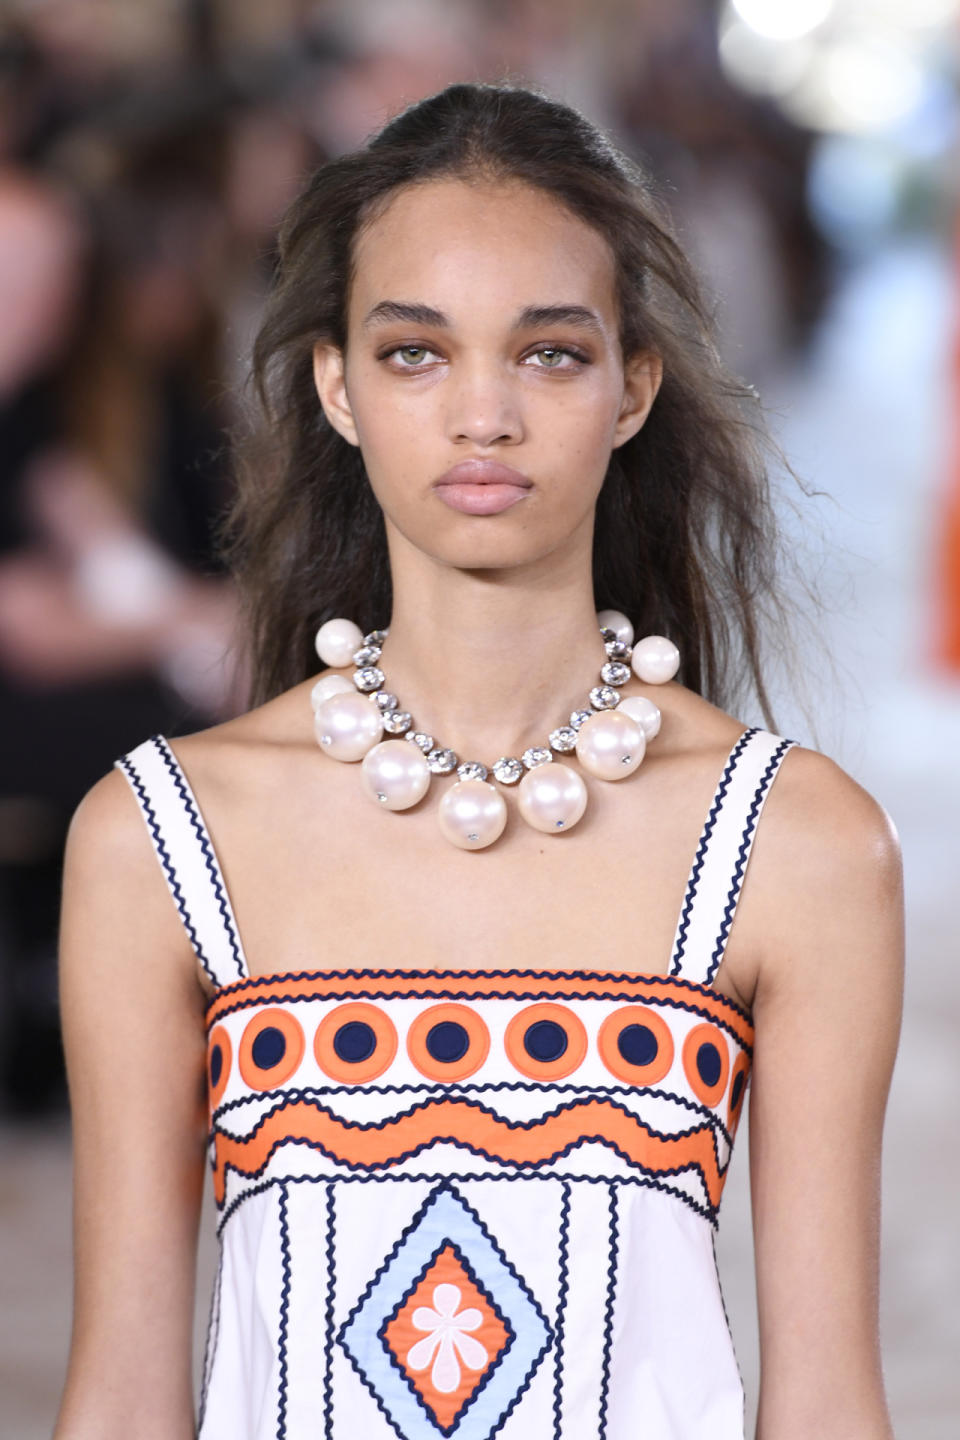 A model on the Tory Burch runway. (Photo: Getty Images) height=